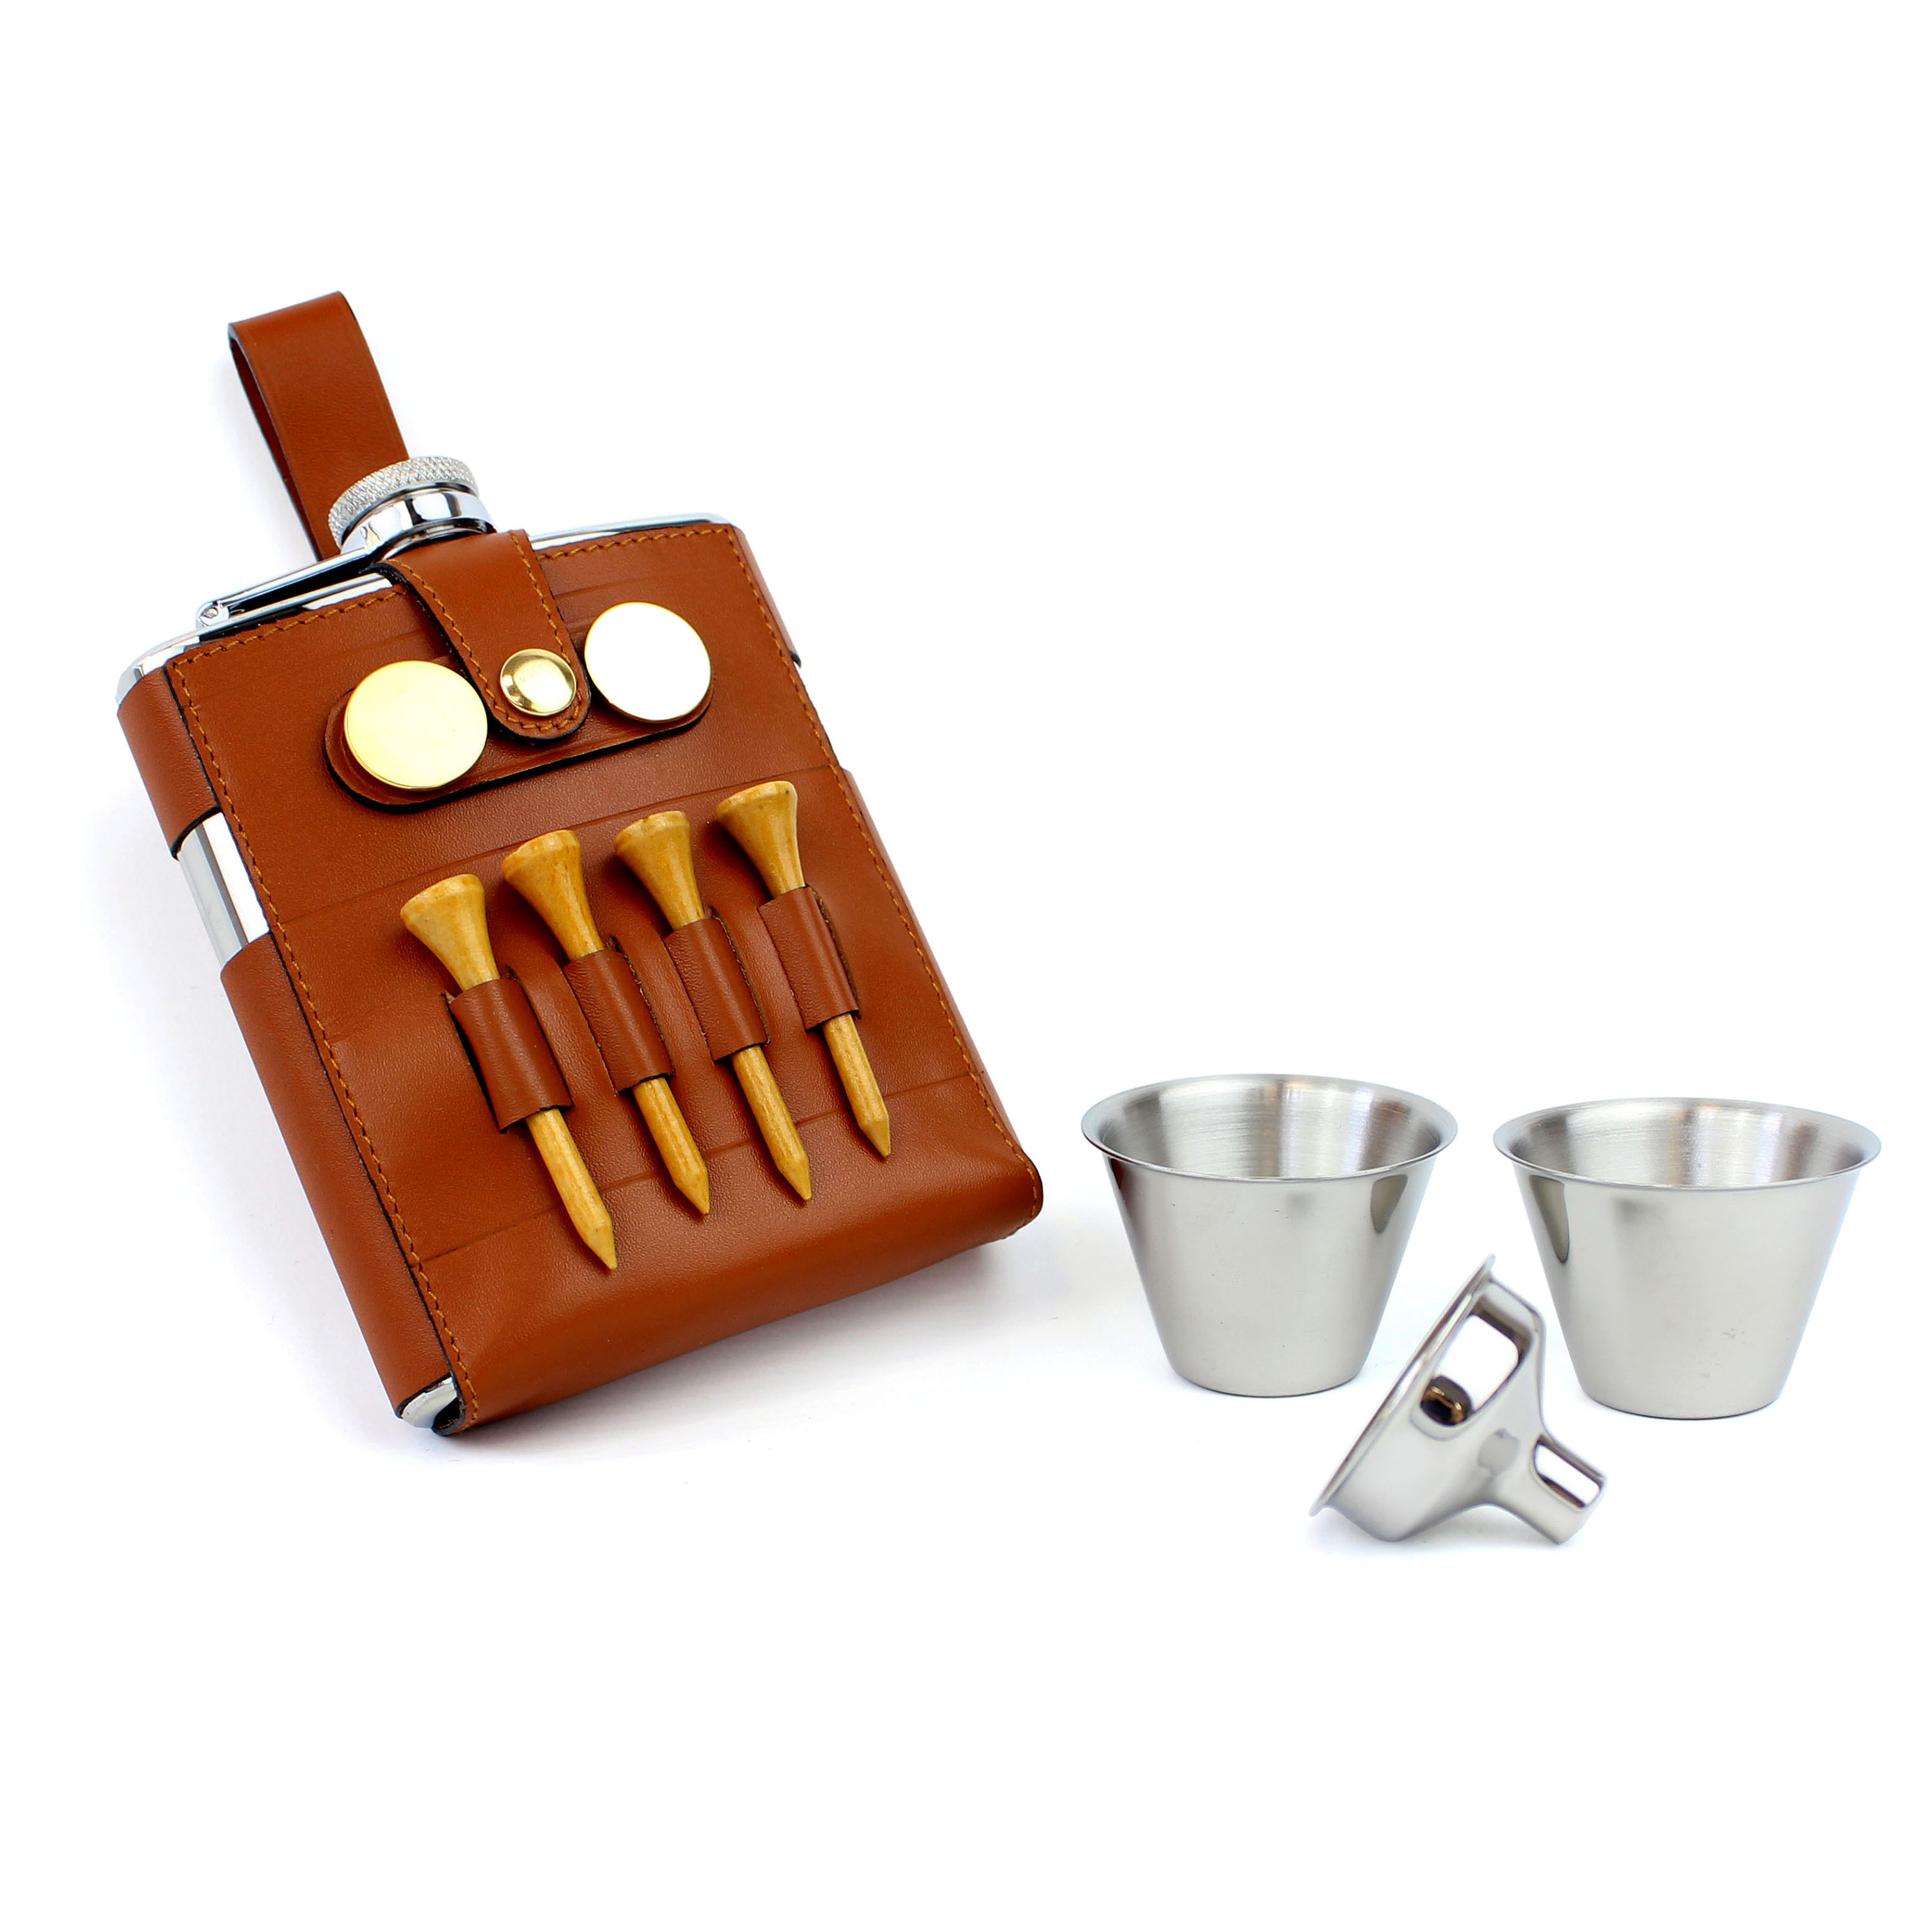 An image of 7oz Stainless Steel Leather Hip Flask Golf Gift Set